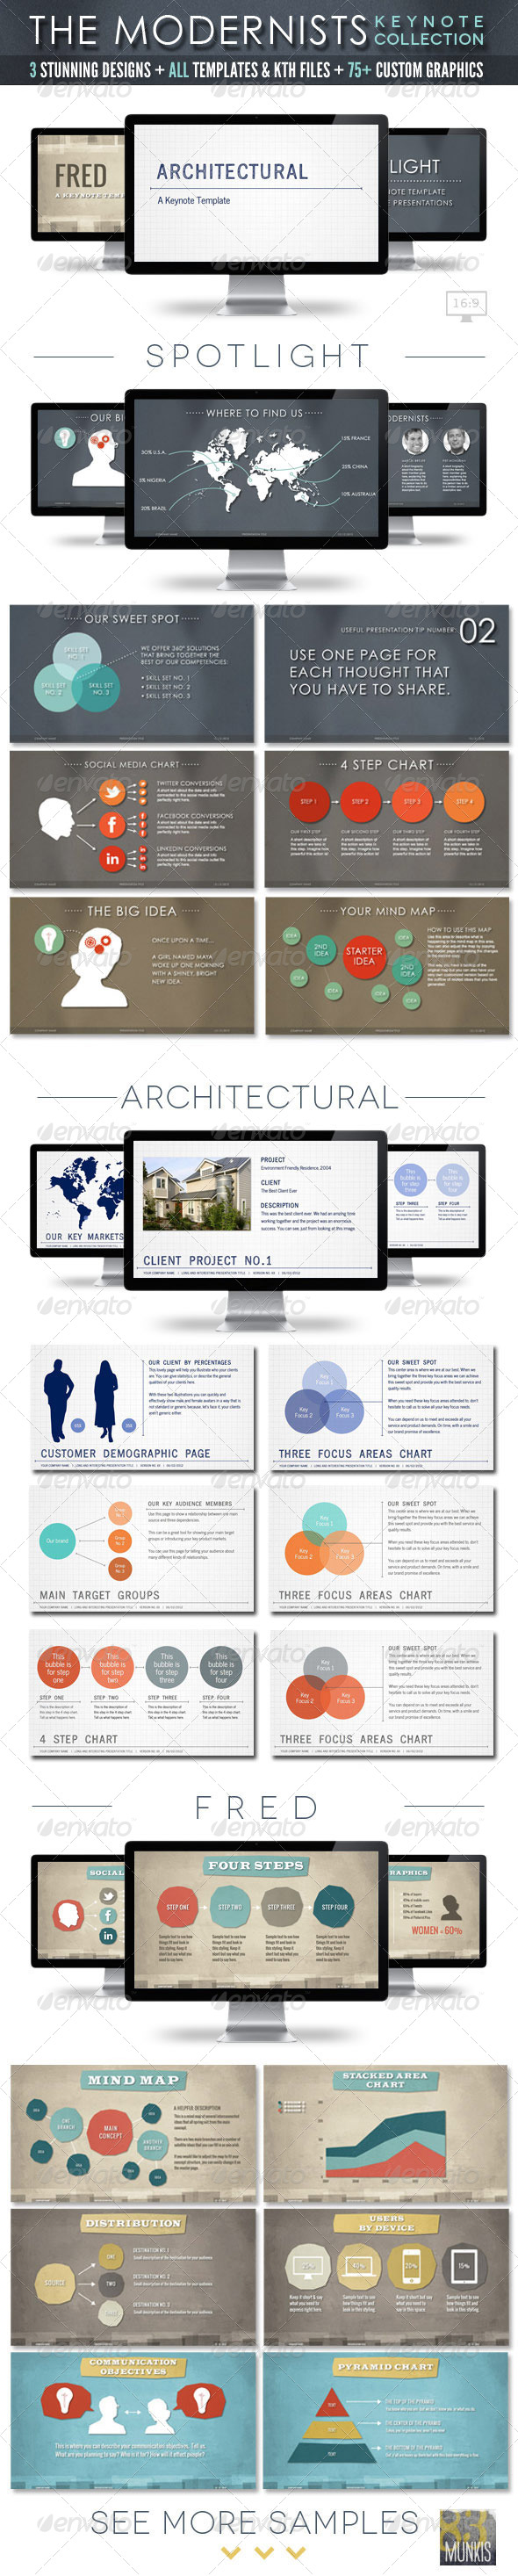 The Modernists Collection - Keynote Templates - Keynote Templates Presentation Templates